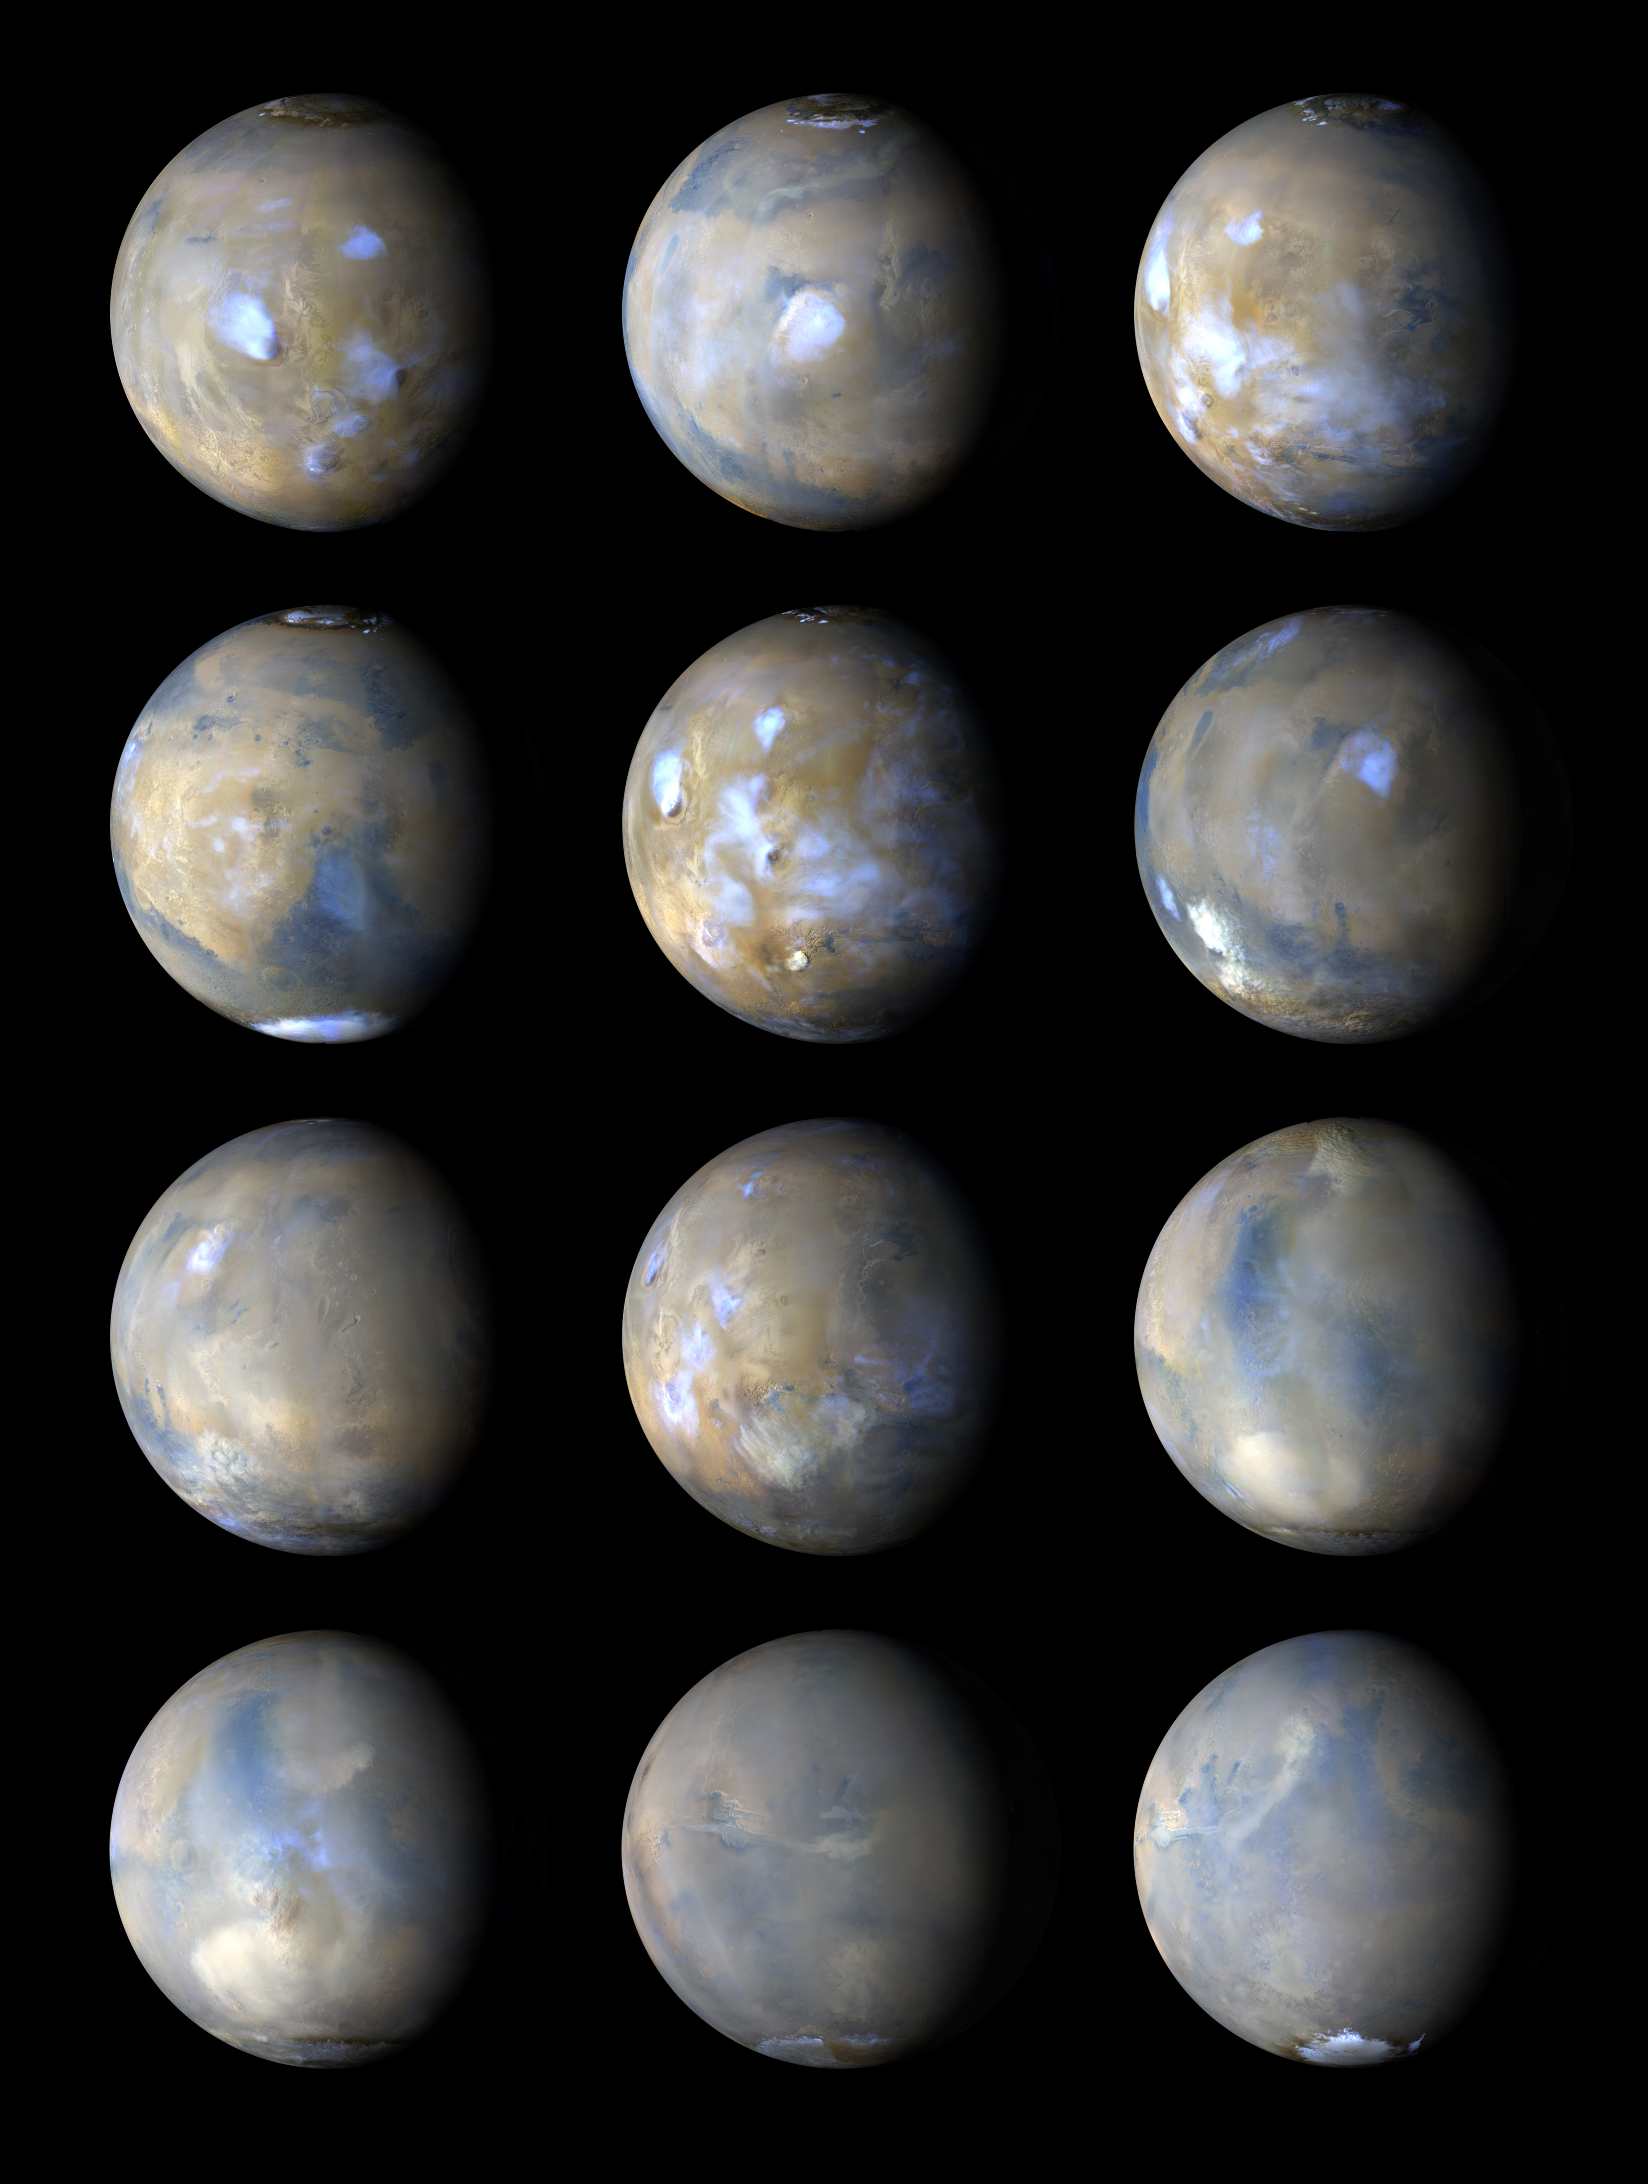 from http://www.planetary.org/multimedia/space-images/mars/20141229_mars_marci_14.html